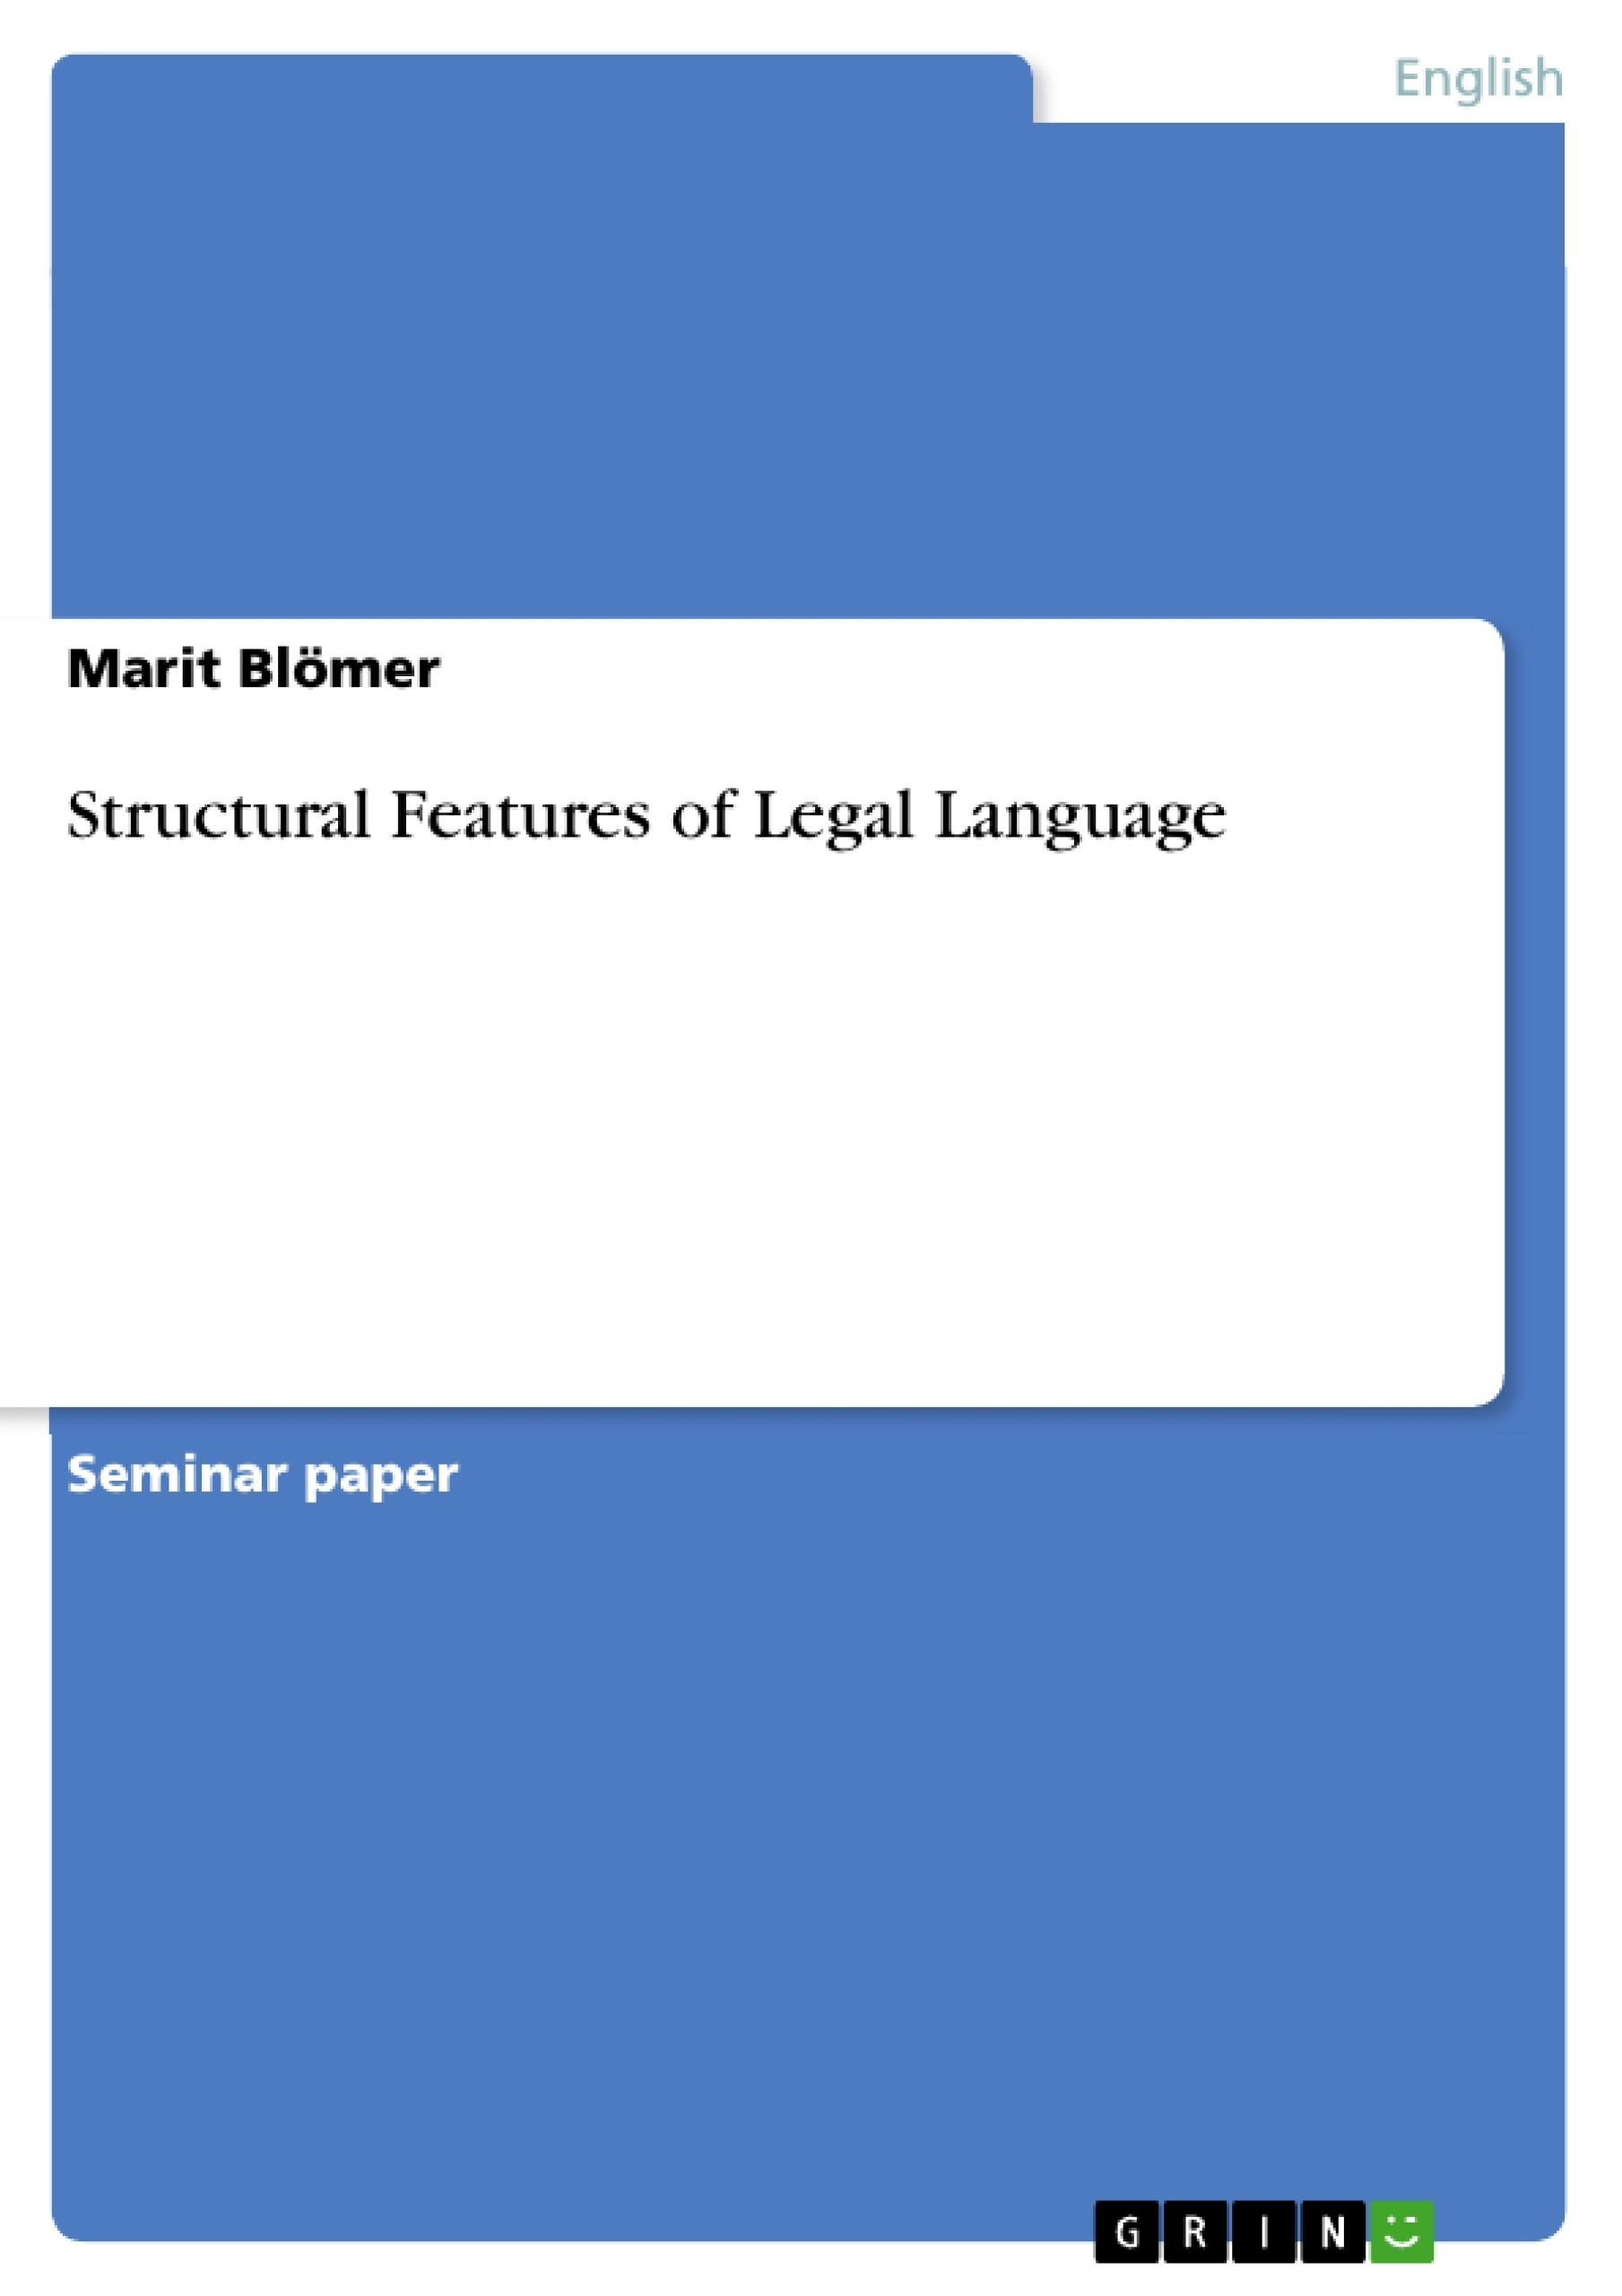 Title: Structural Features of Legal Language